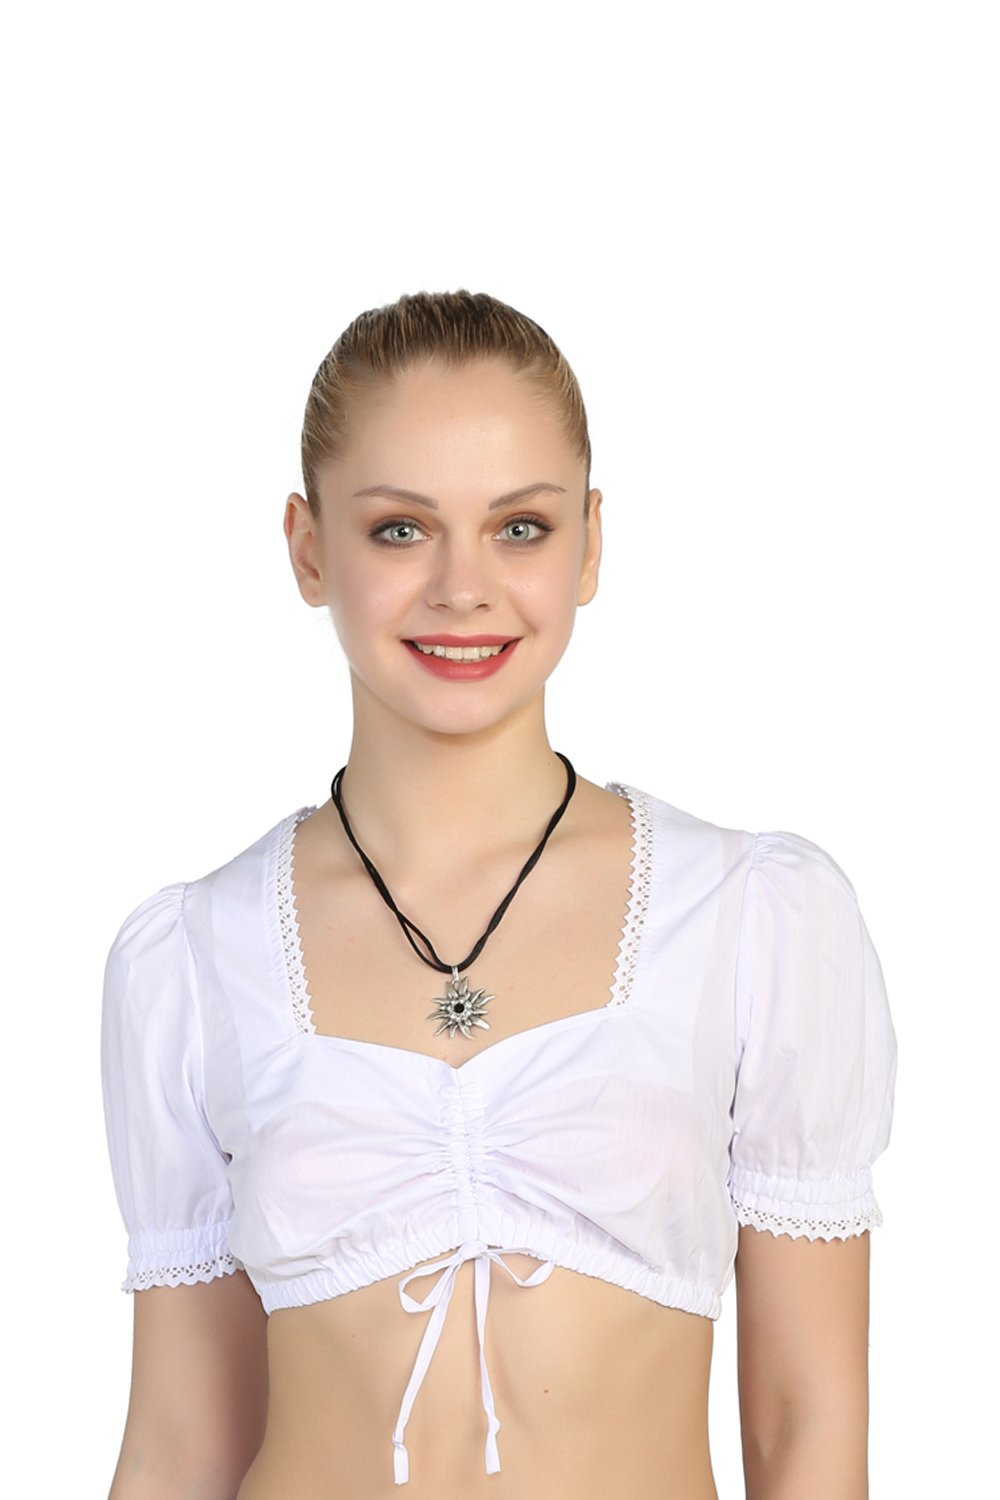 Lukas Trachtenmoden Authentic Bavarian Dirndl Blouse For Dirndl With Ruffles (8)